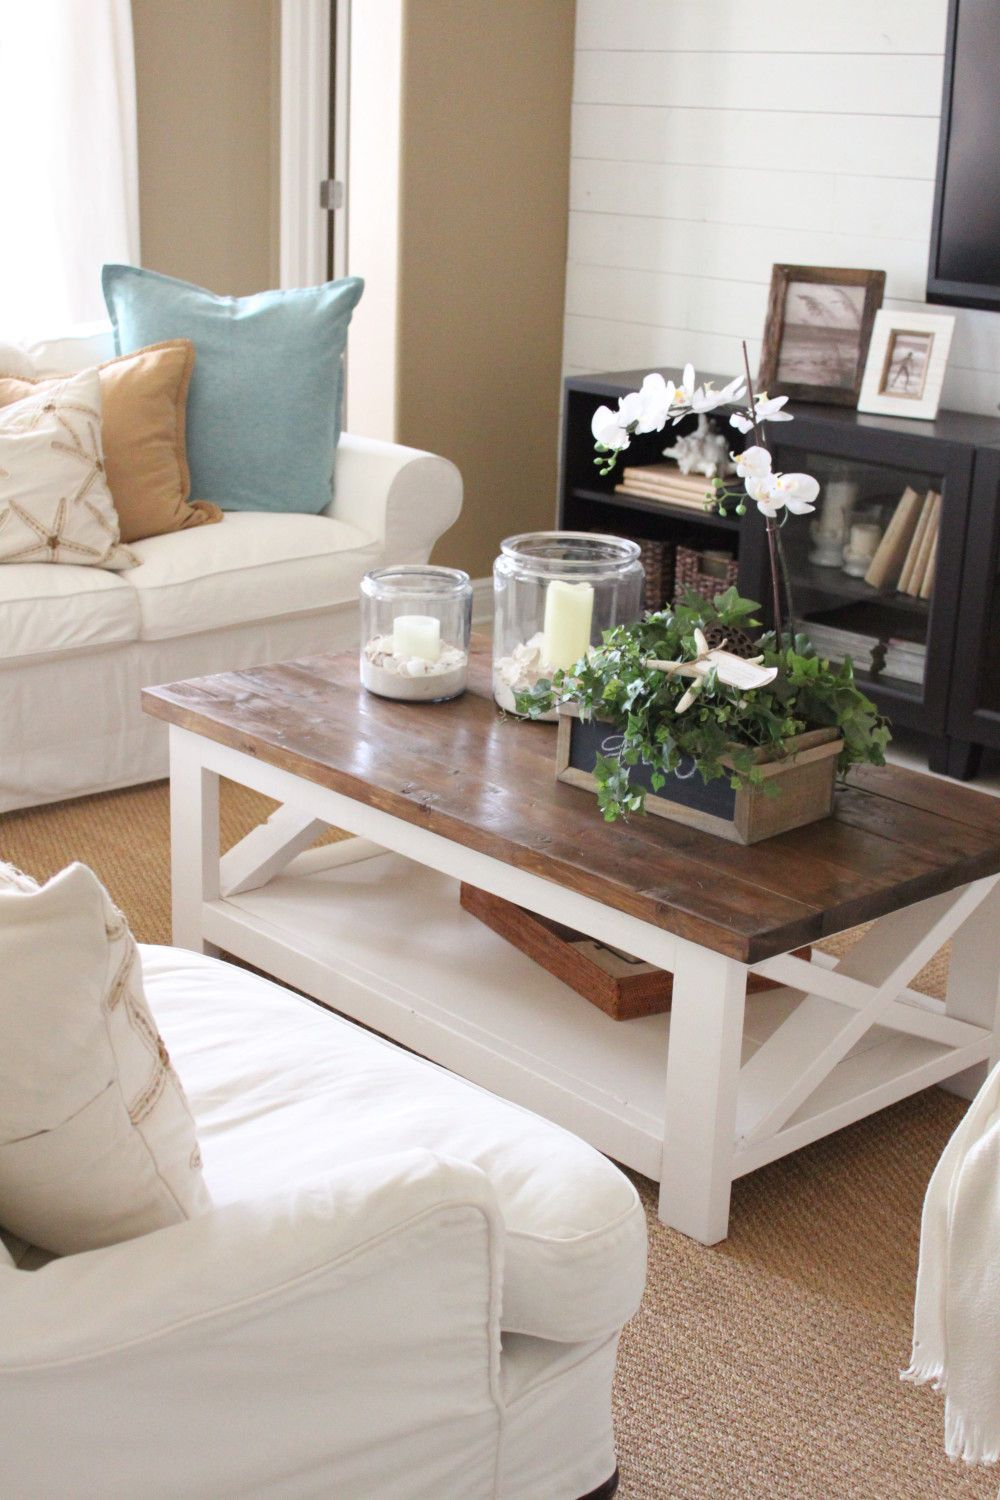 Pin by Rachel Pannell on Living room Decorating coffee